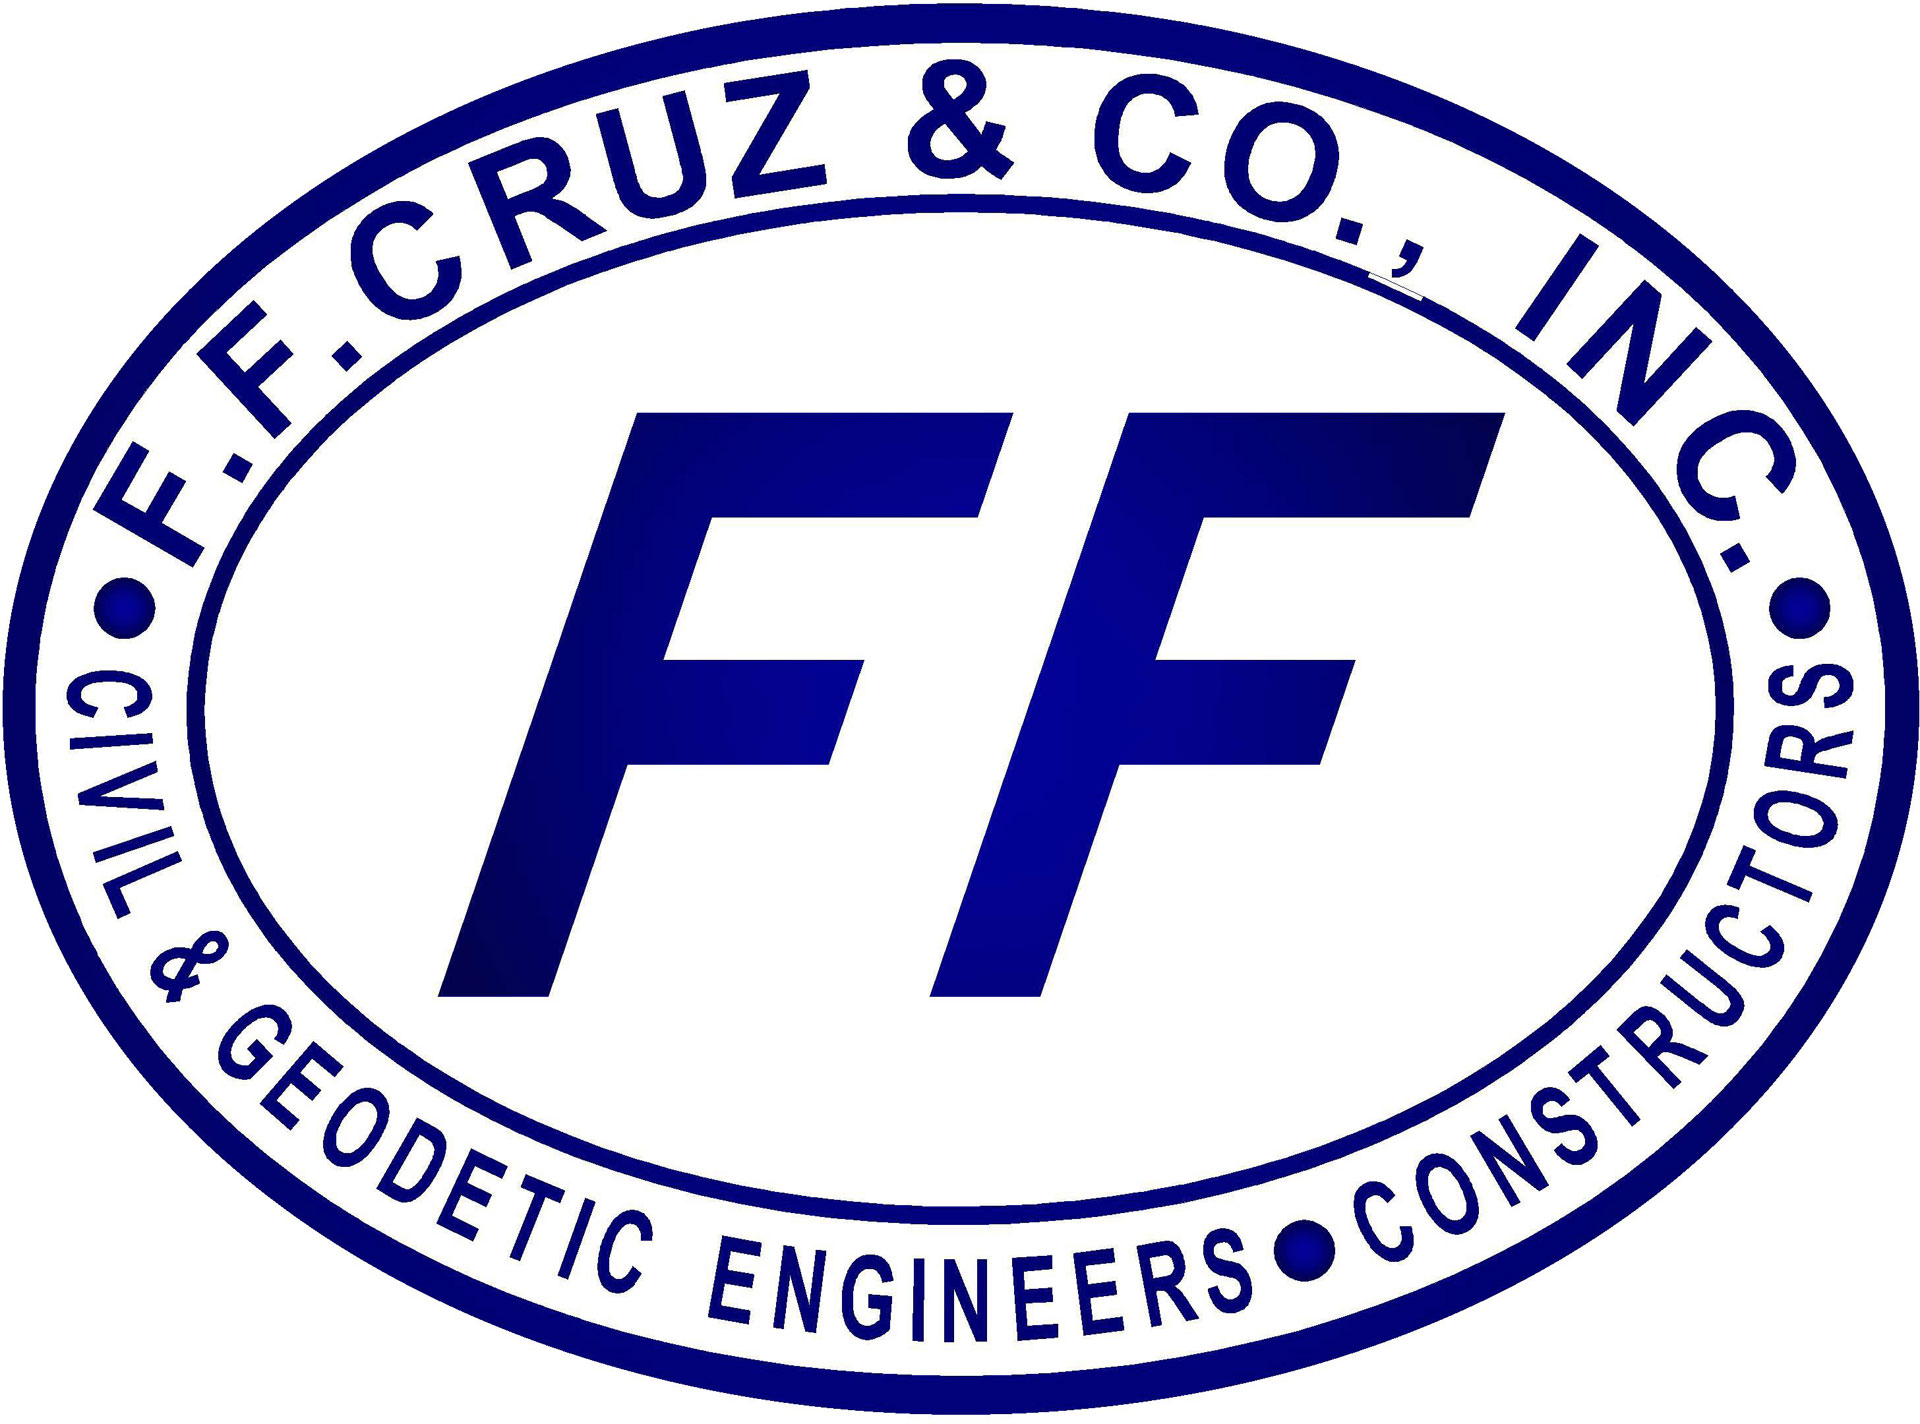 F.F. Cruz and Company